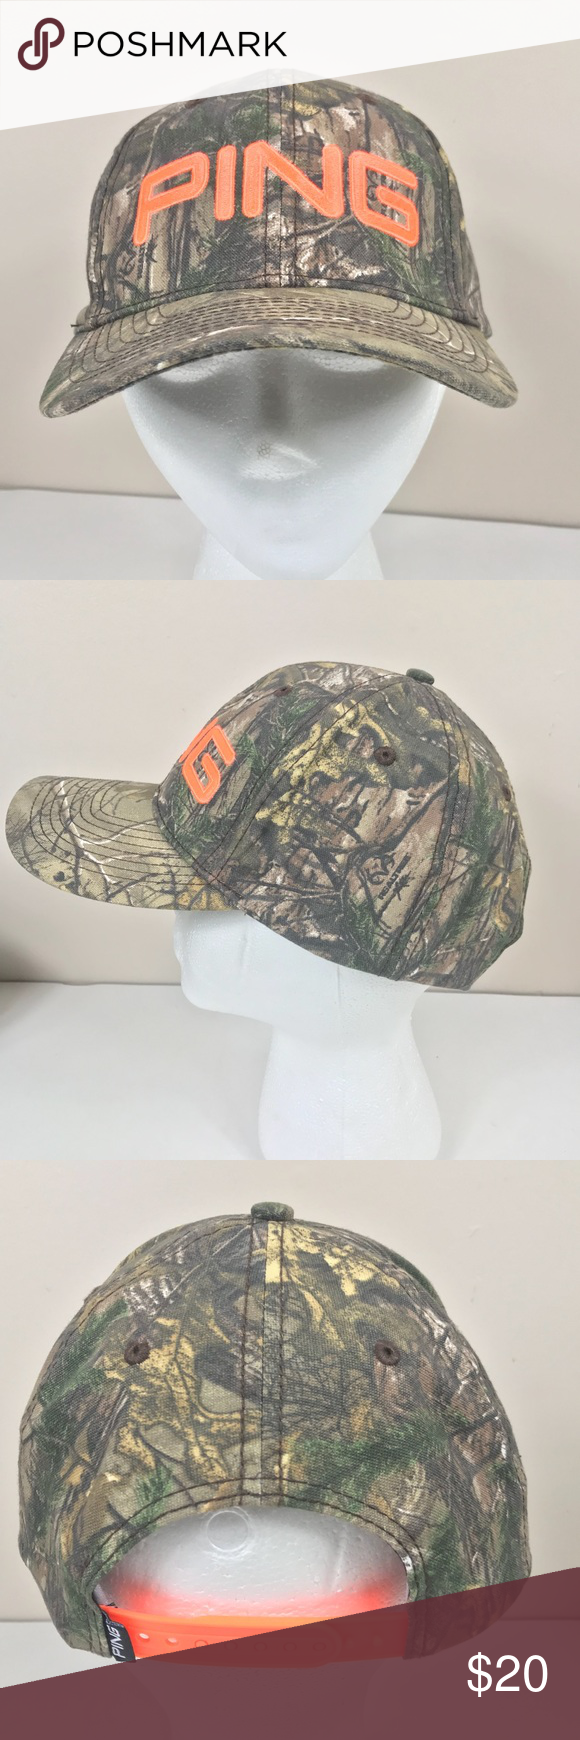 PING Camo Blaze Neon Orange Adjustable Golf Hat Check out my other listings  for great deals 02e02a3d13ab